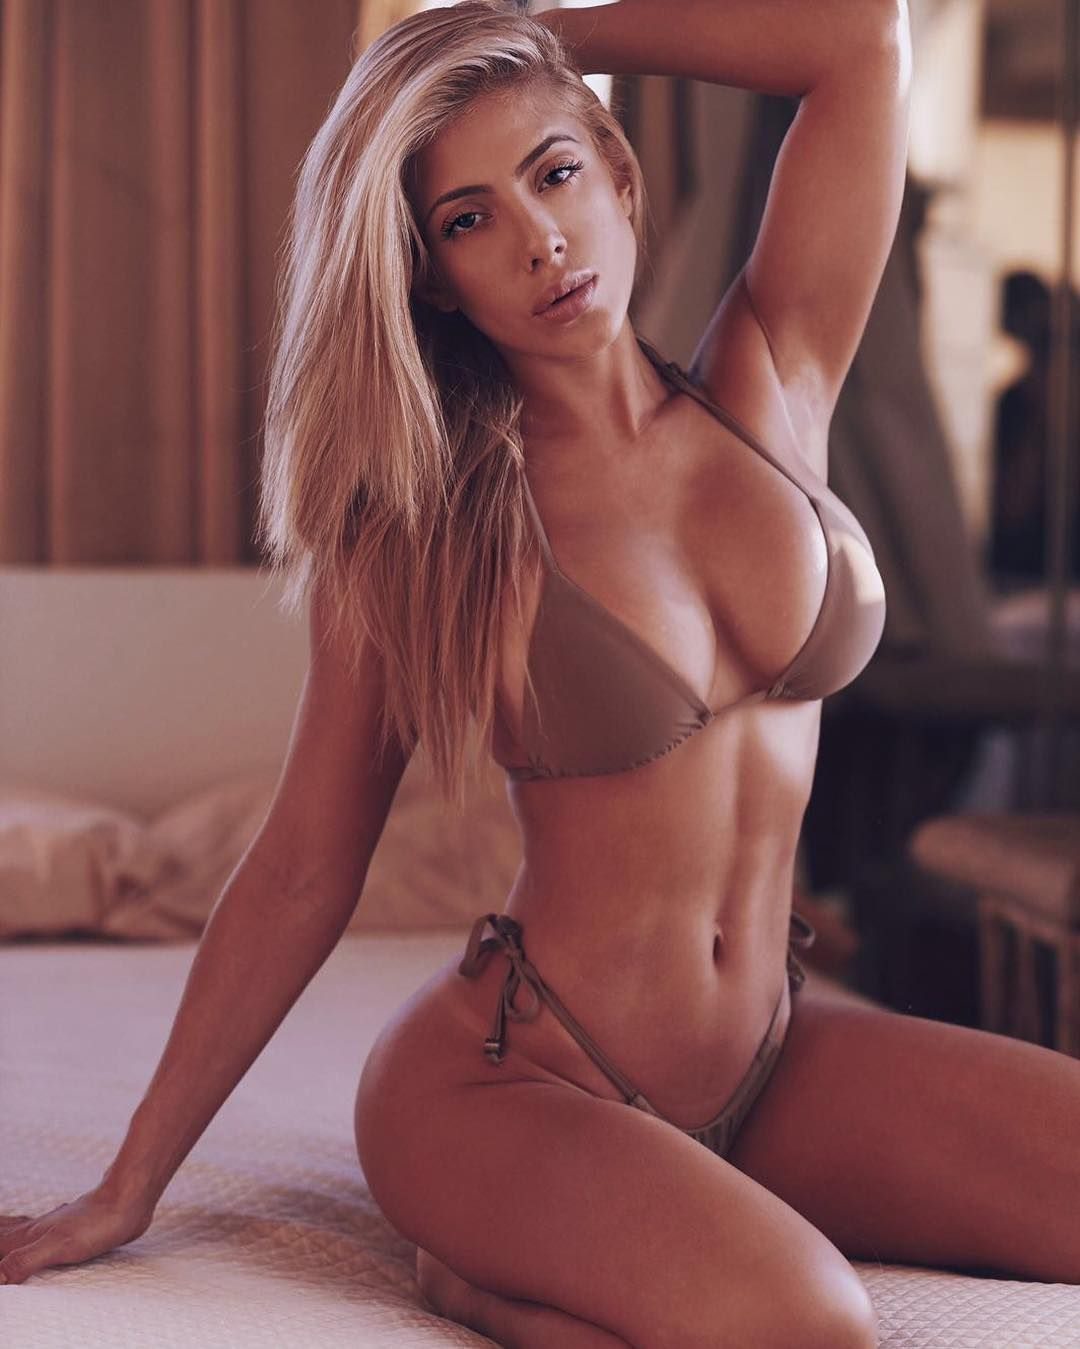 Forum on this topic: Samara weavings sexiest leaked pictures, valeria-orsini-photos/